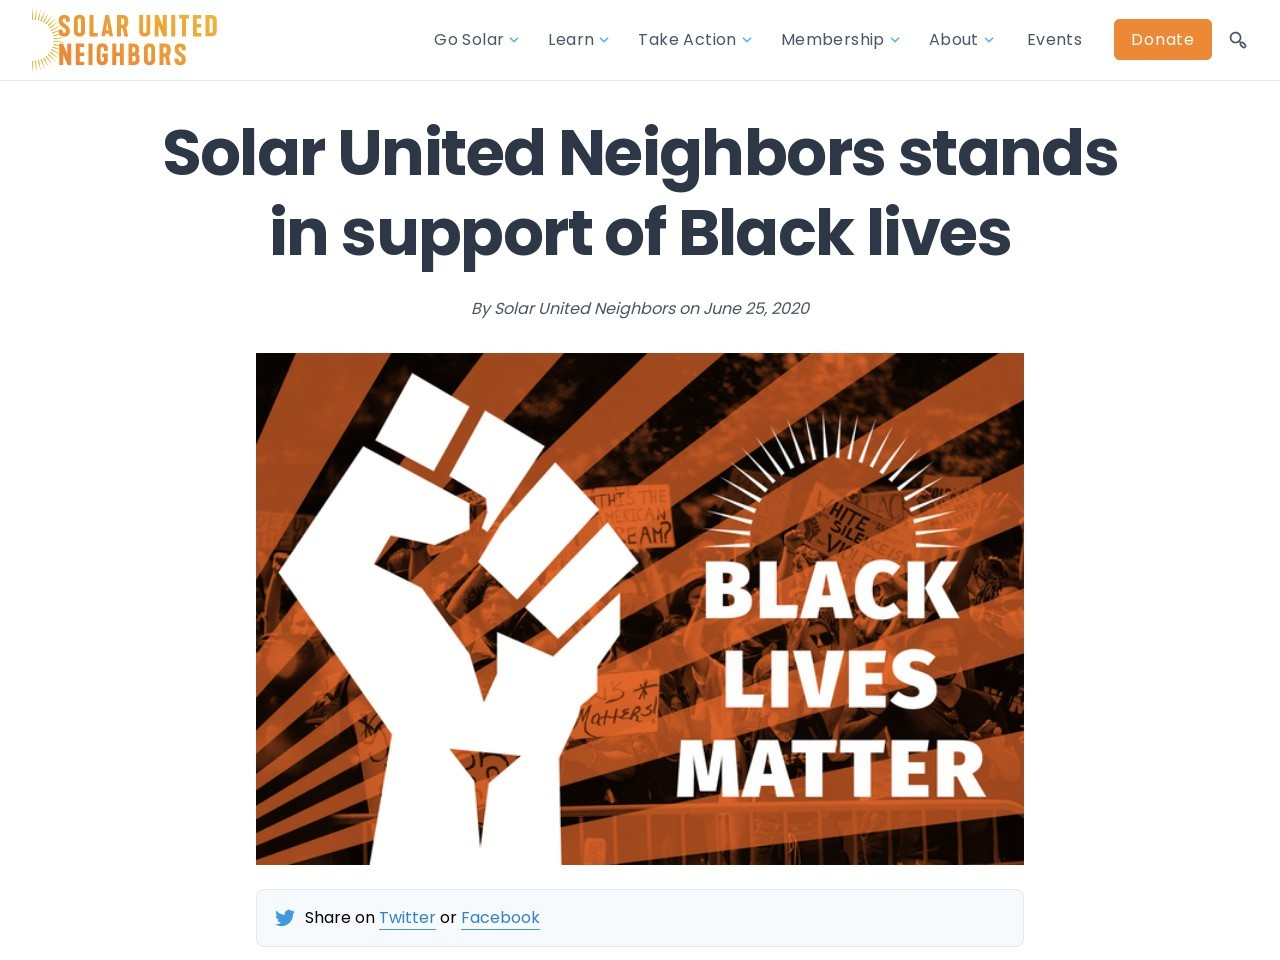 Solar United Neighbors stands in support of Black lives